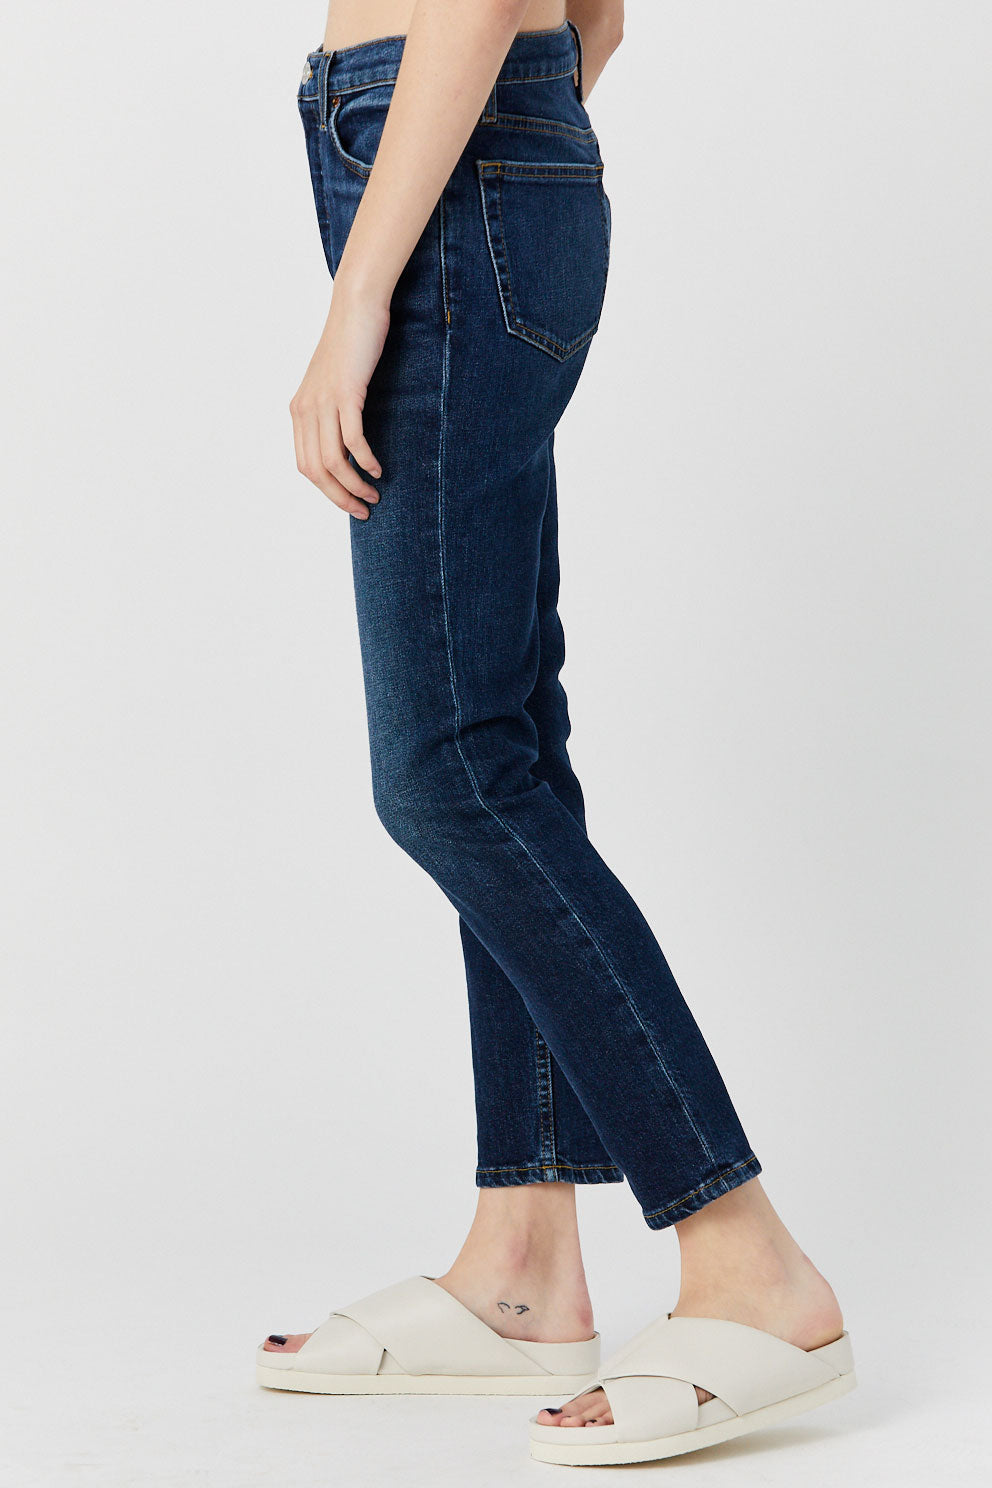 RE/DONE - High Rise Ankle Crop, Indigo